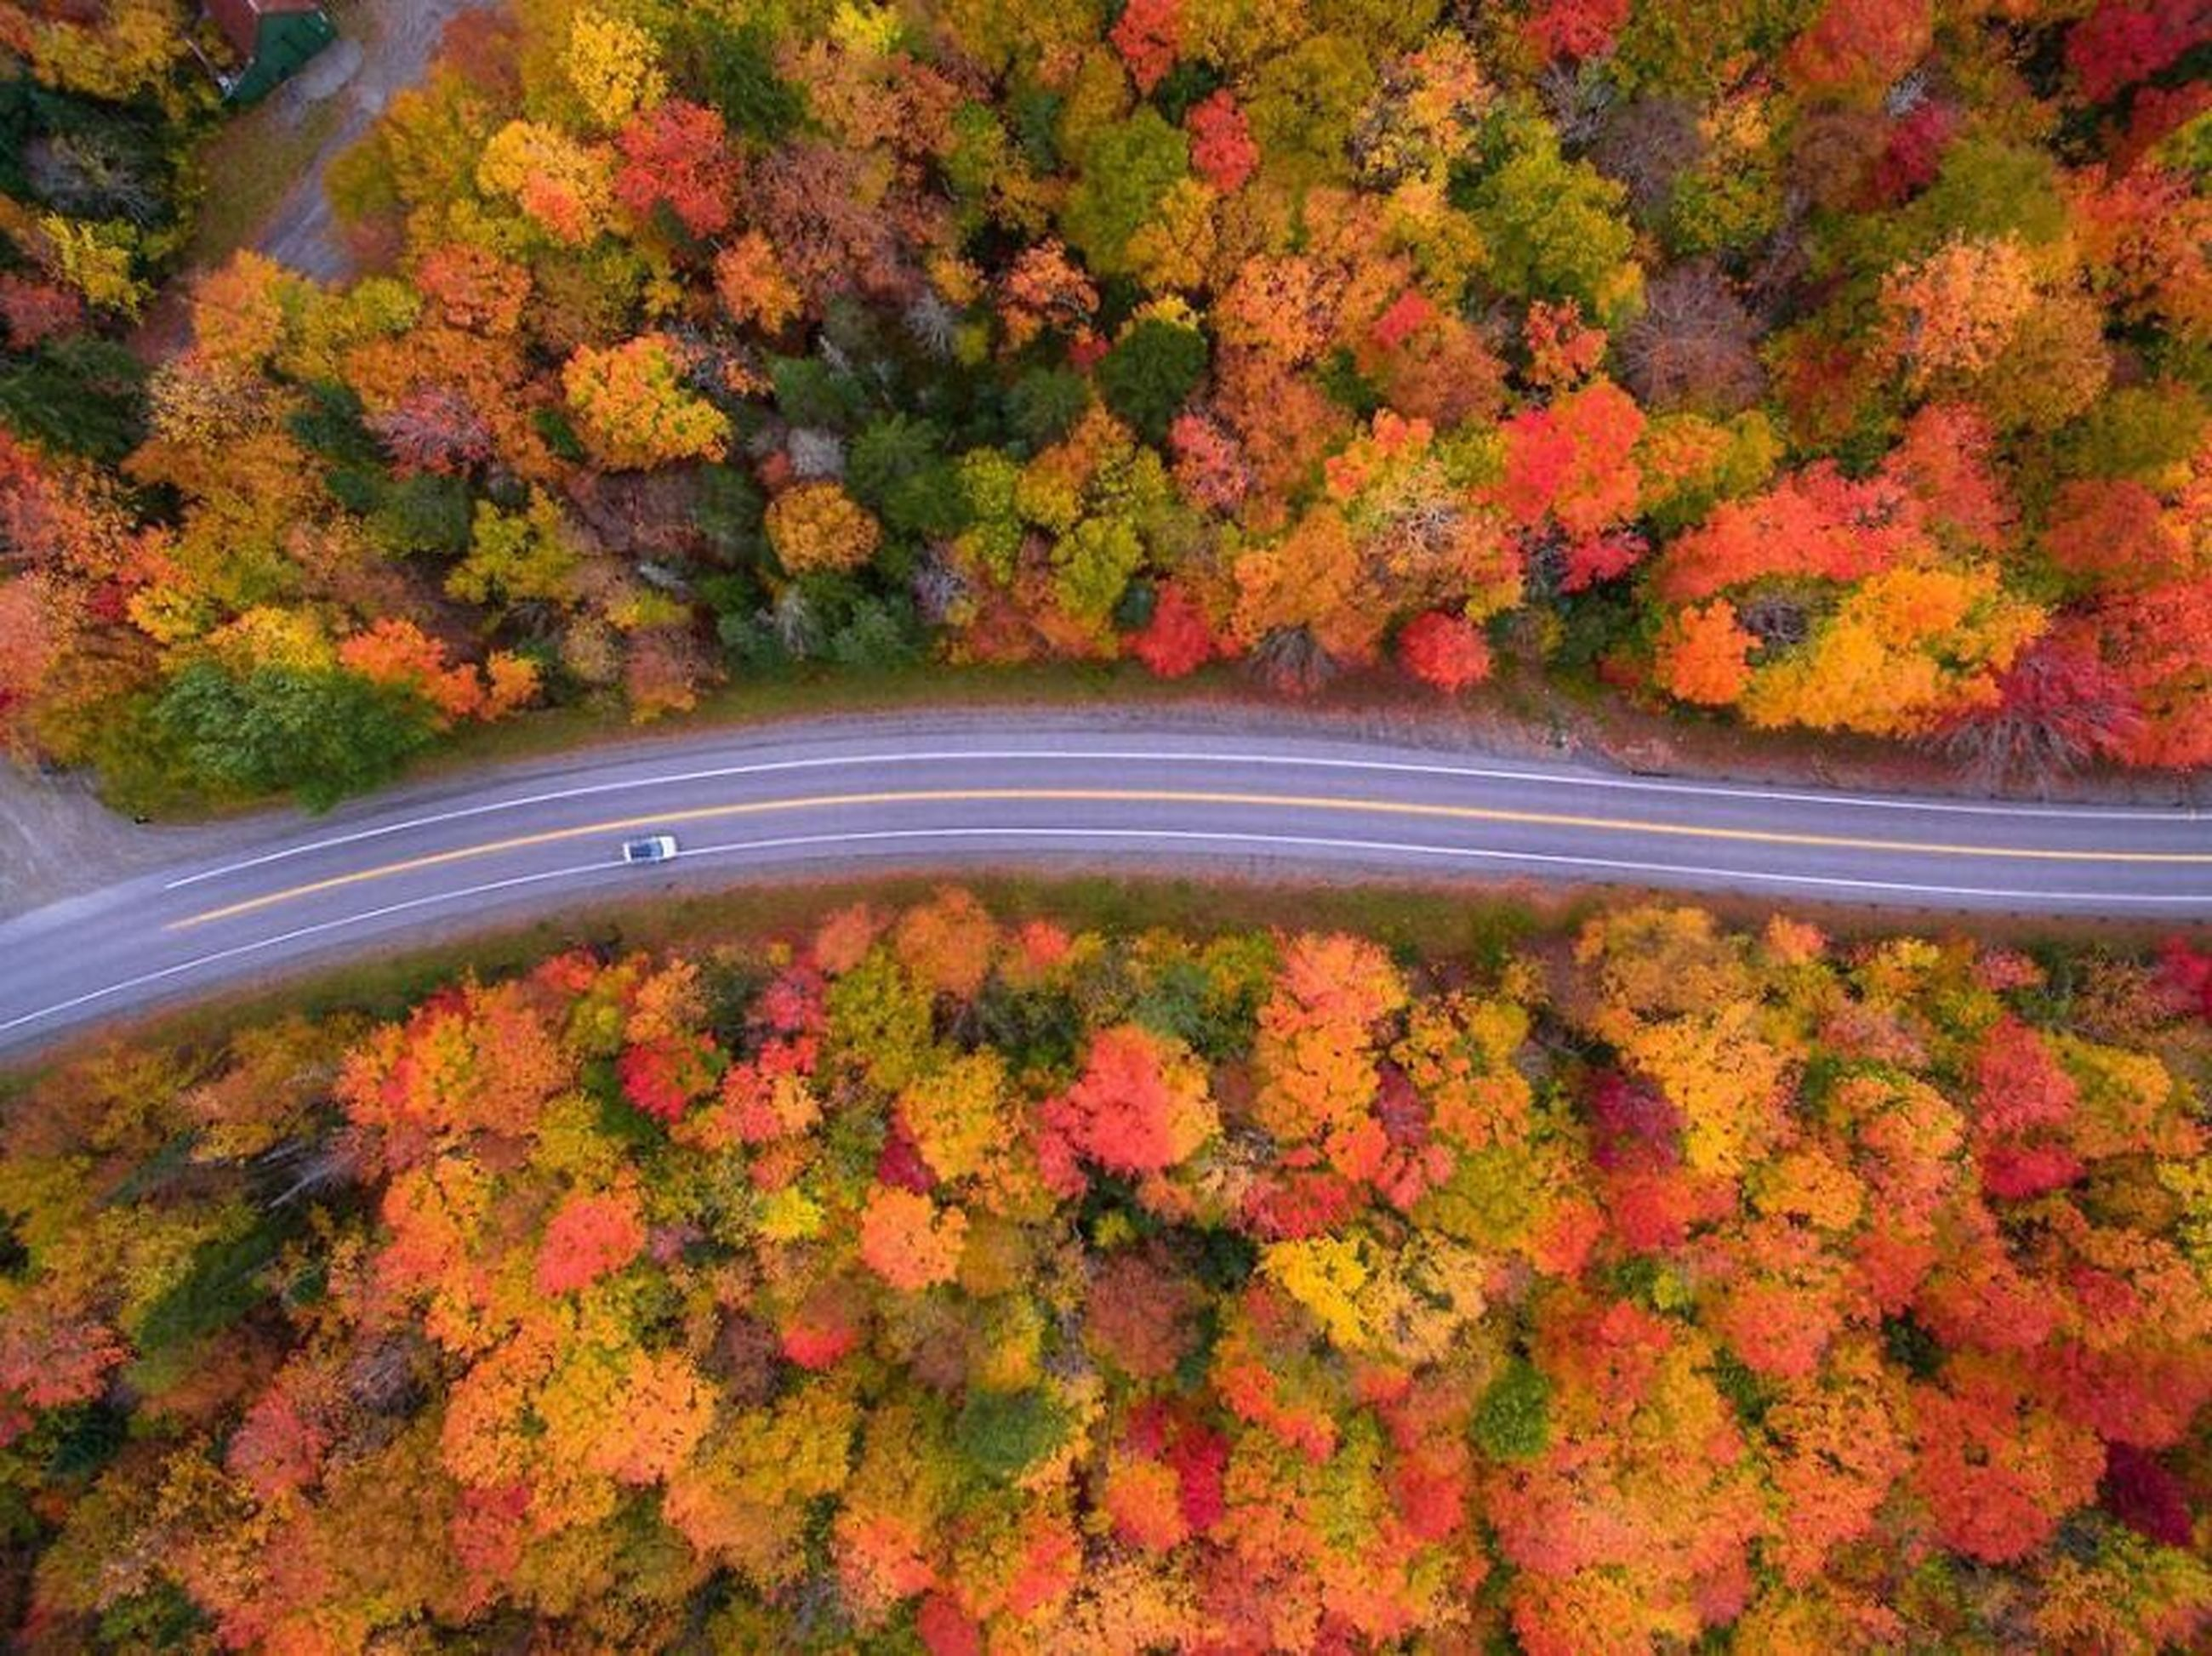 autumn, change, leaf, tree, beauty in nature, nature, scenics, orange color, outdoors, tranquil scene, tranquility, no people, forest, day, maple tree, red, maple leaf, landscape, growth, multi colored, plant part, maple